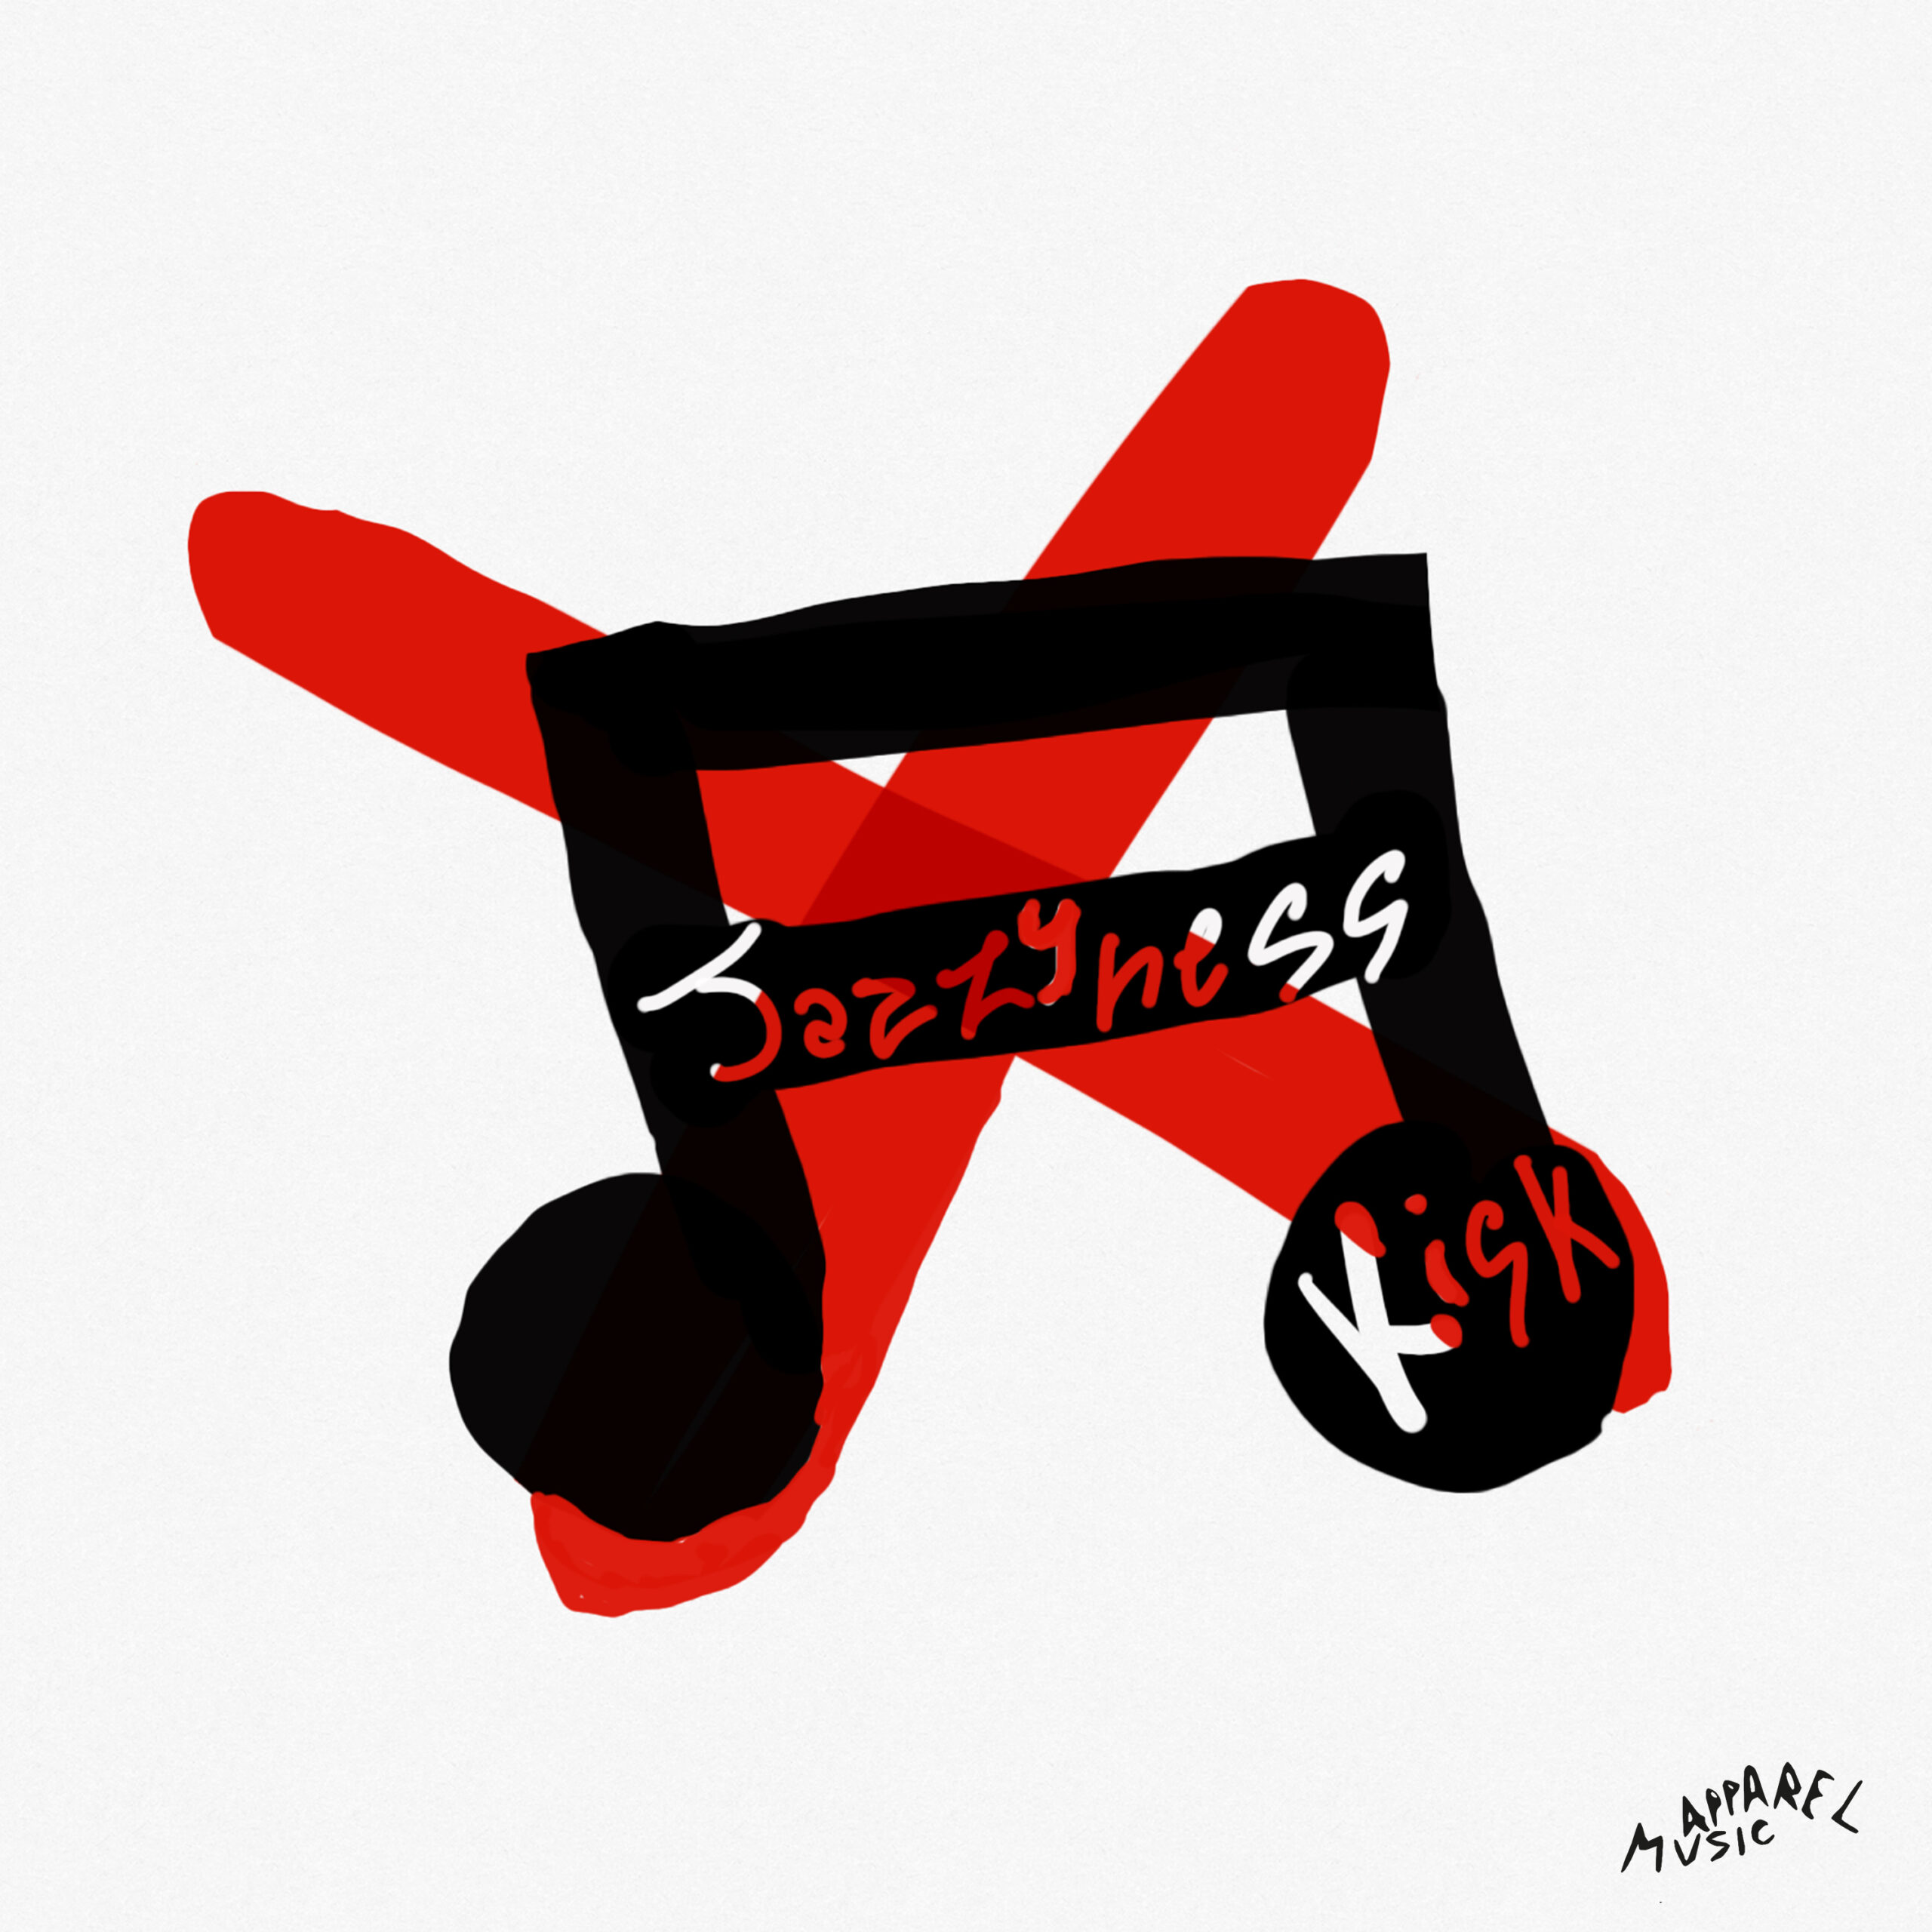 Sentireascoltare LP review 'Kisk – Jazzyness'